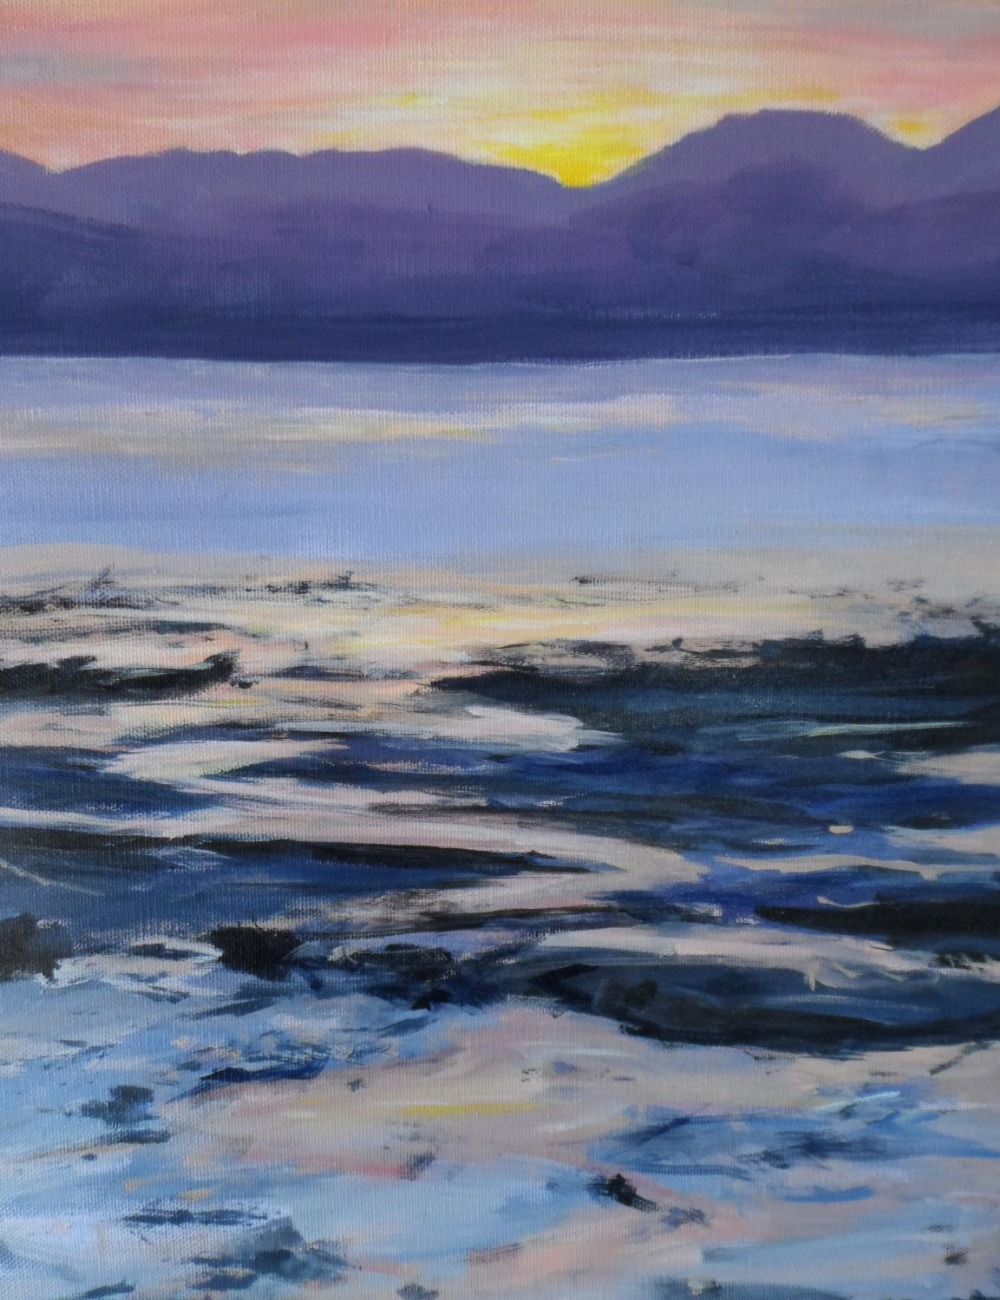 """Indistinctly signed, modernist oil on canvas, """"Red sunset over beach & sea"""", unframed, 41 x 56 cm - Image 2 of 6"""